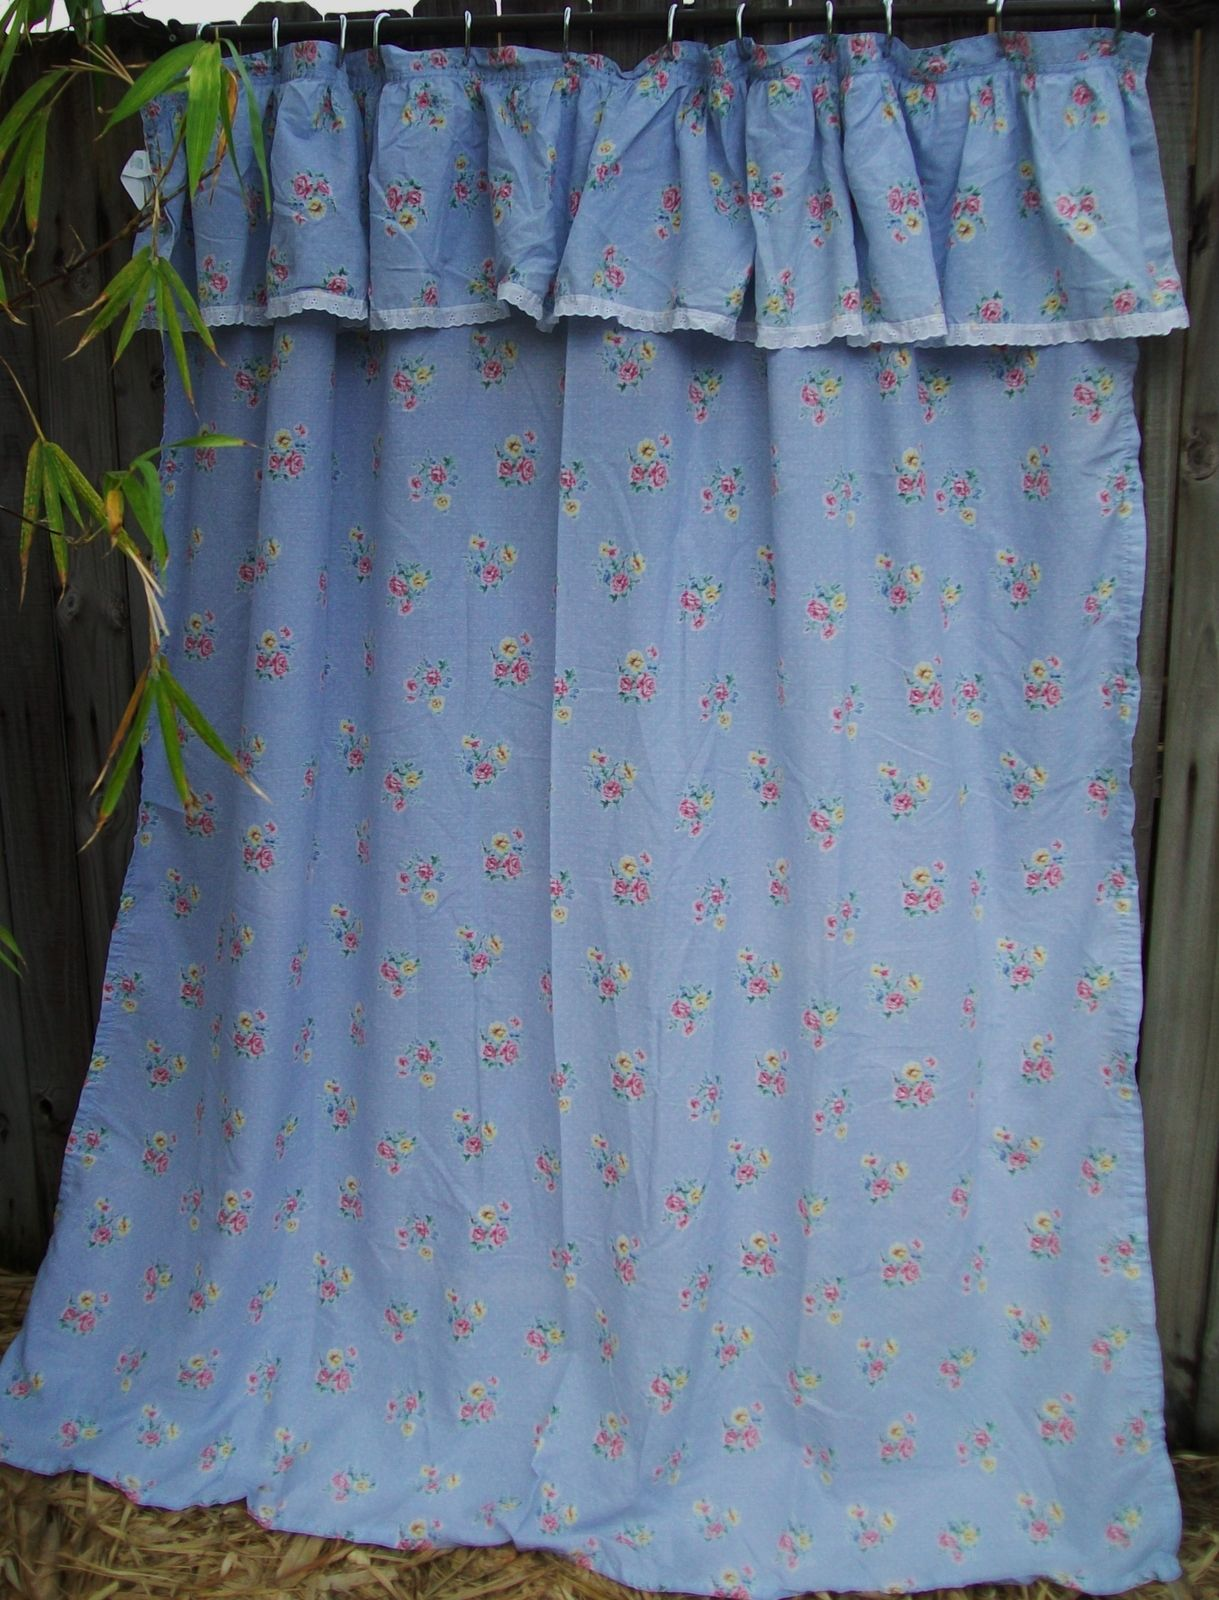 Light Blue Country Floral Fabric Shower Curtain With Lace